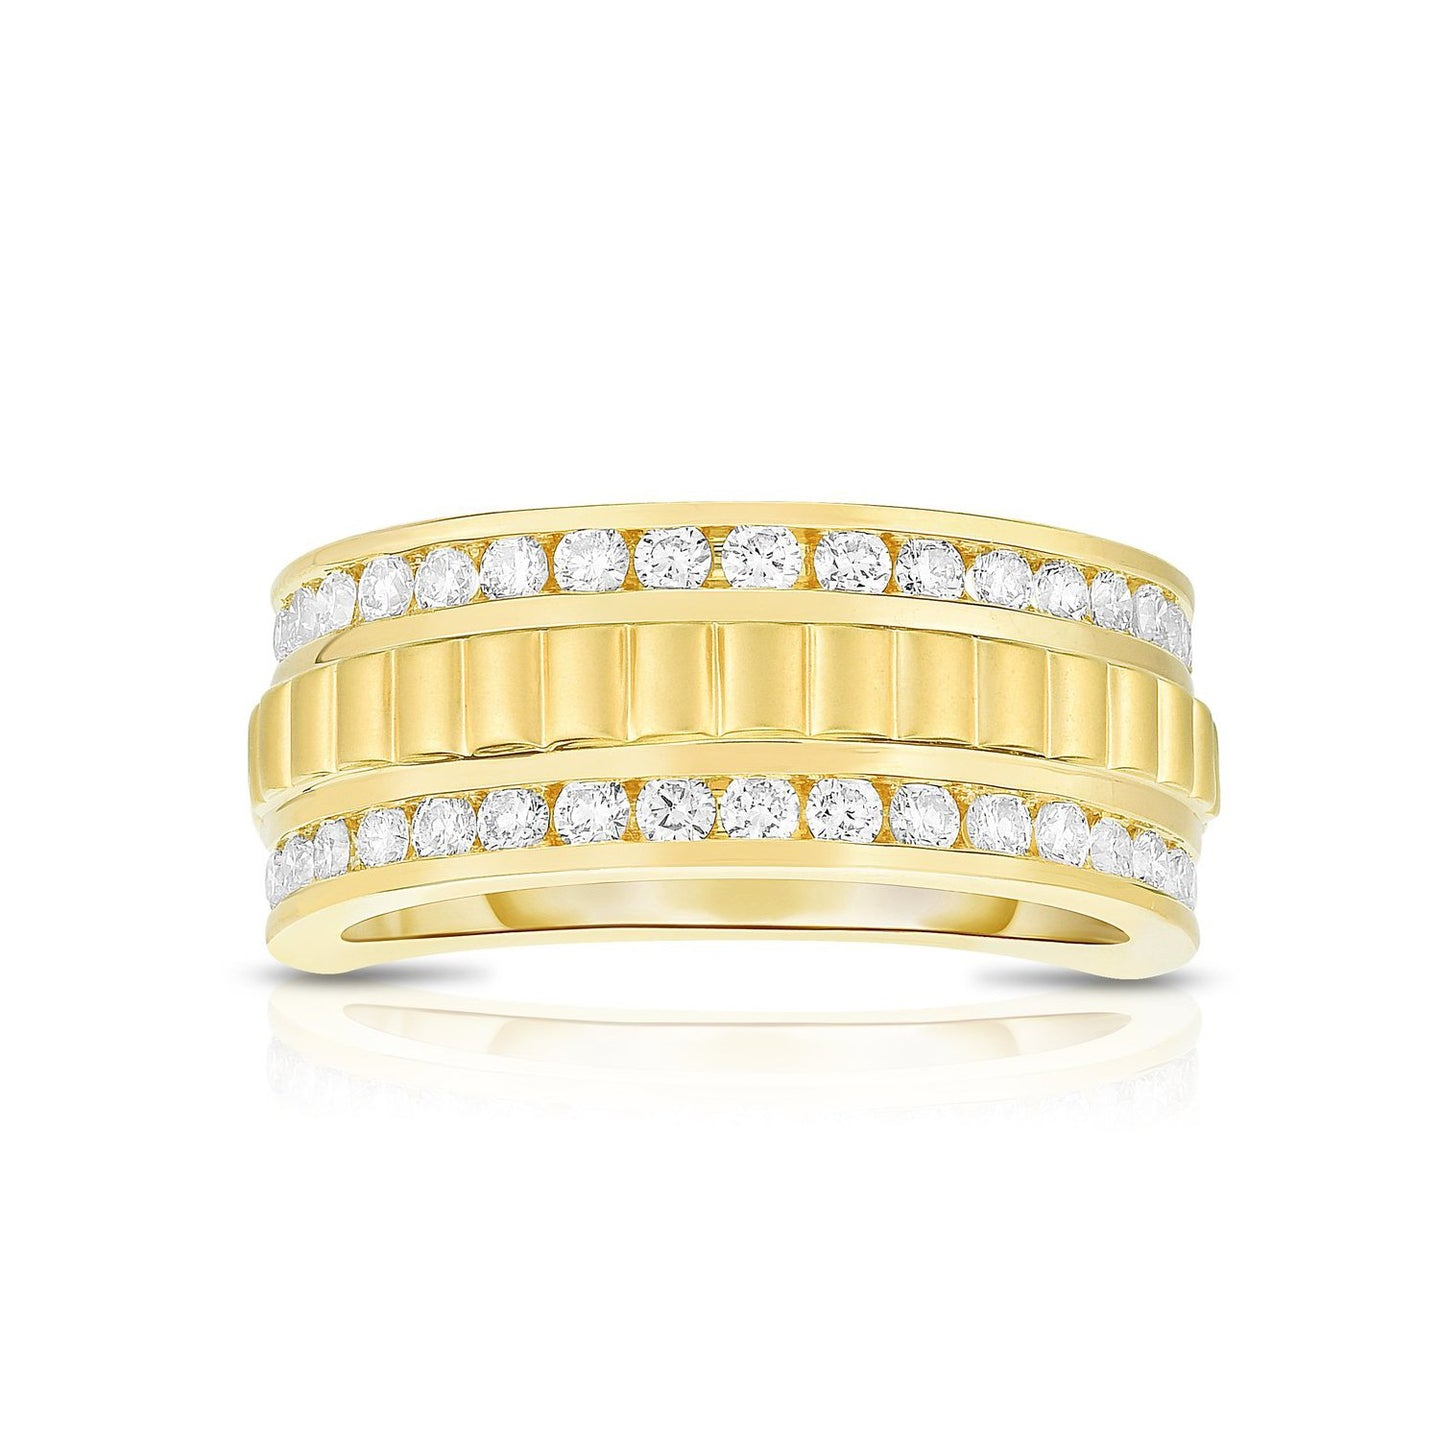 Sabel Collection 14K Yellow Gold Wide Band Ring with Round Diamonds